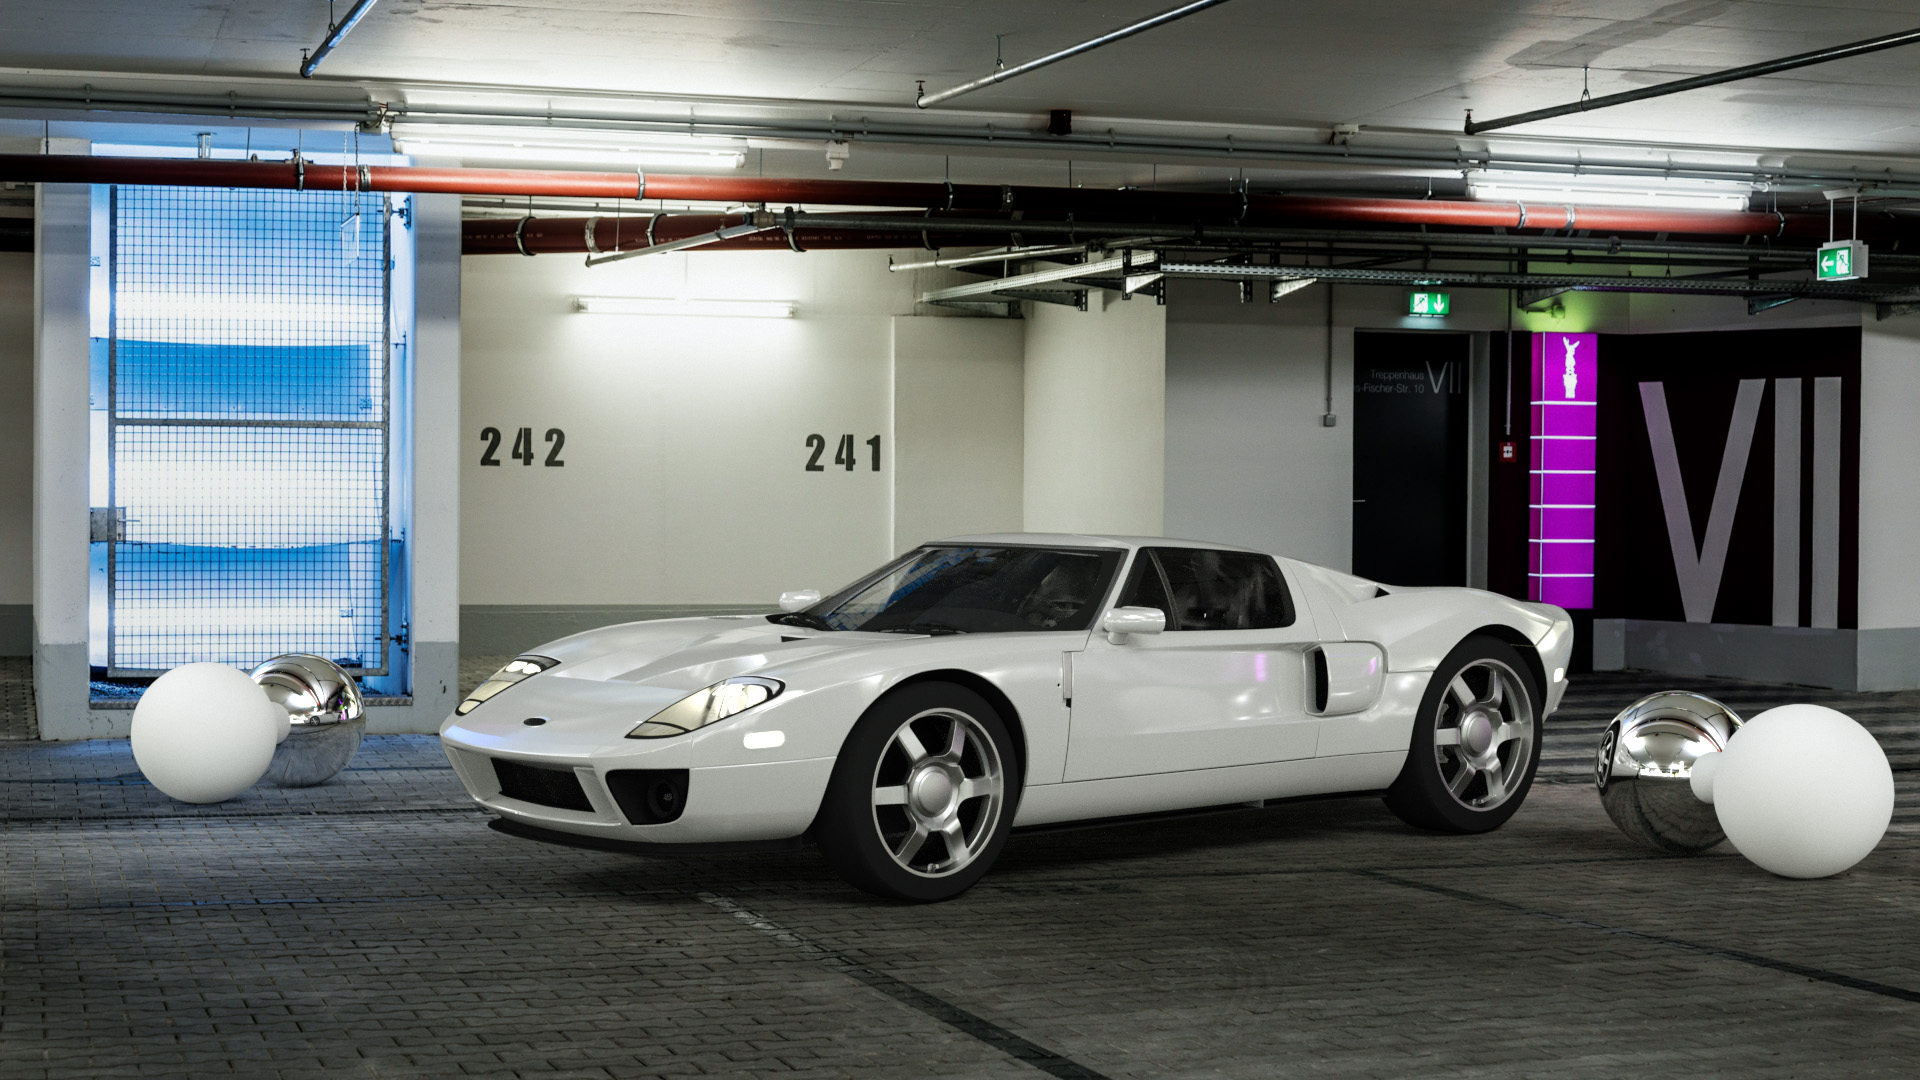 ford_gt_octane_06_garage_15_studio_projection_bgmod